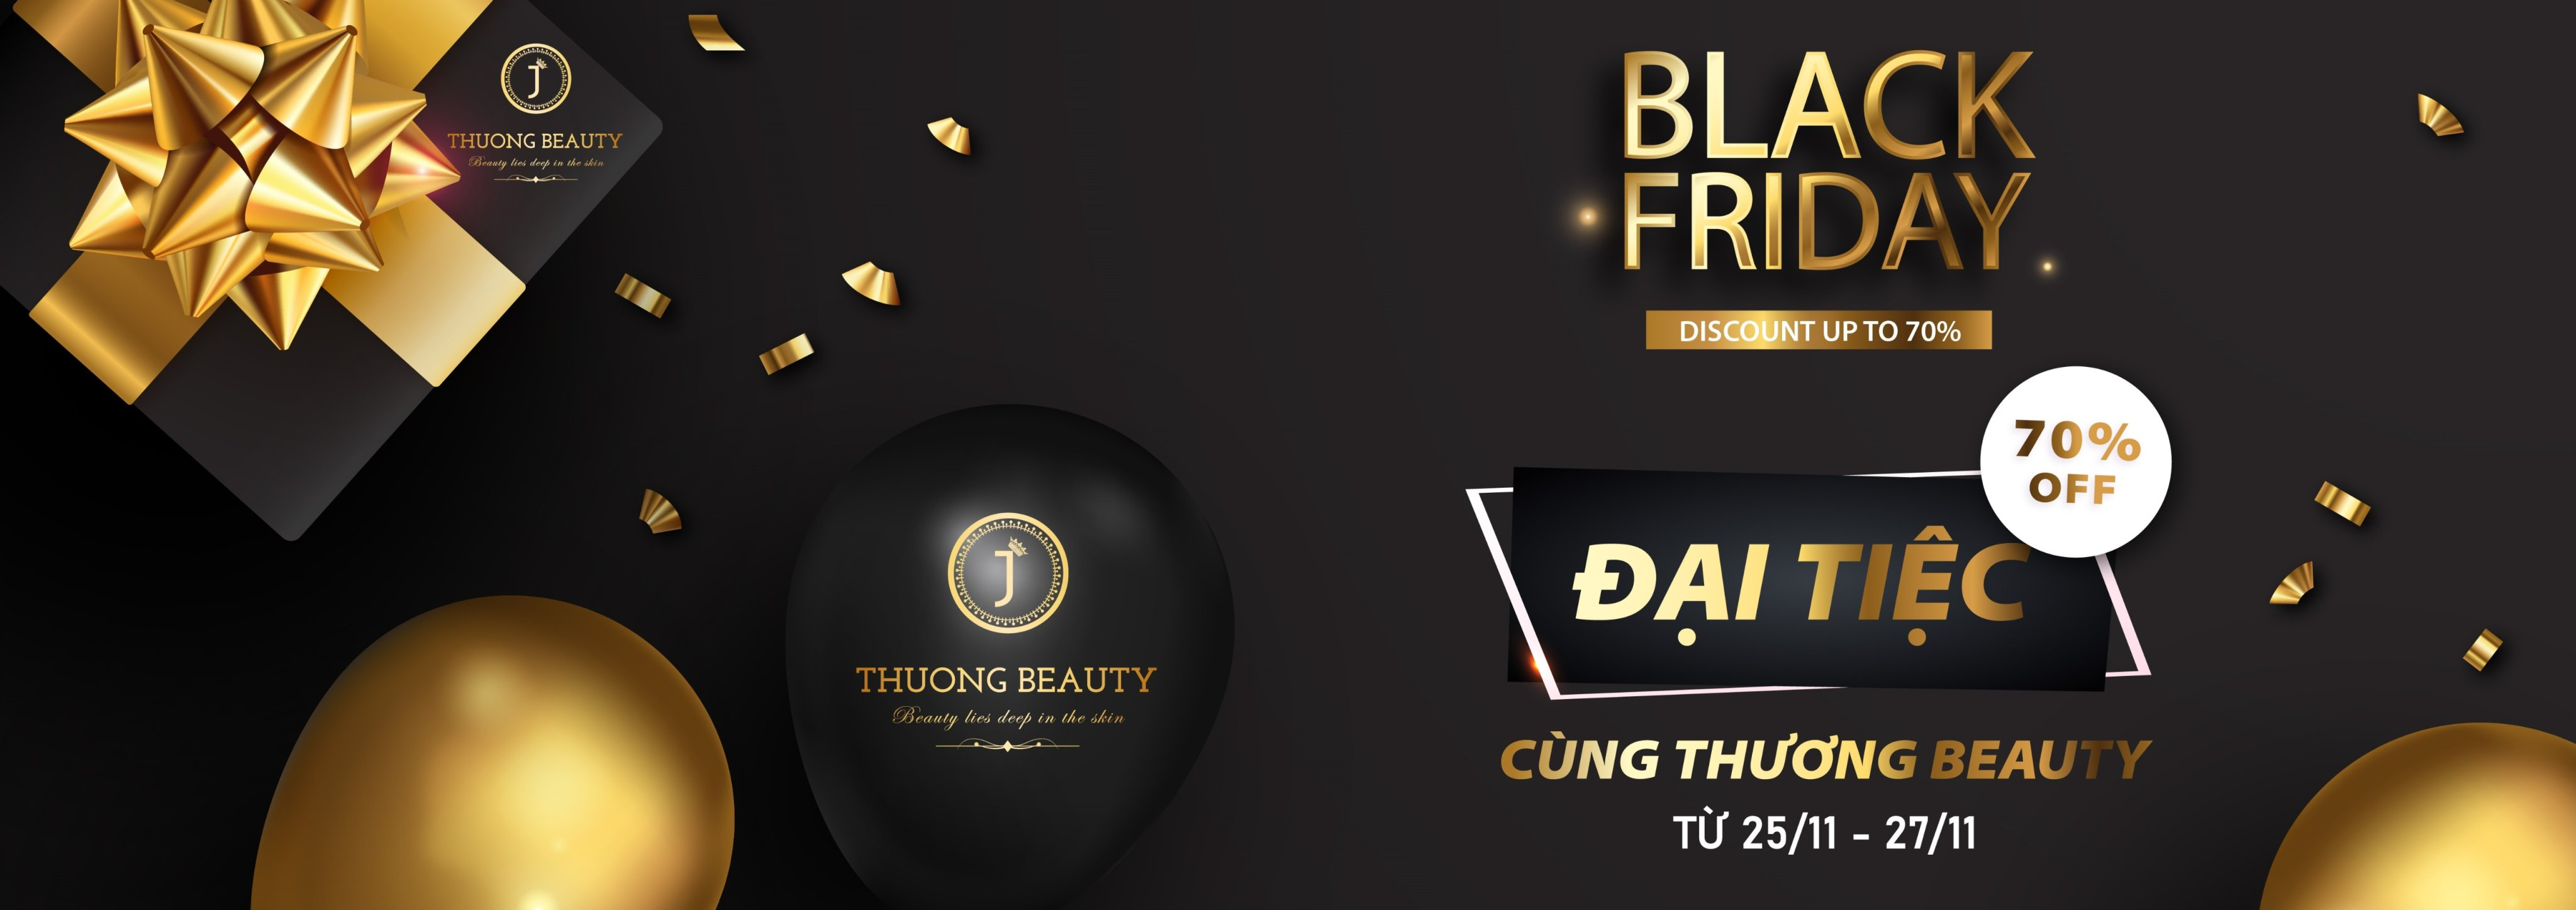 Sale off 70% - Black friday - Thuong Beauty